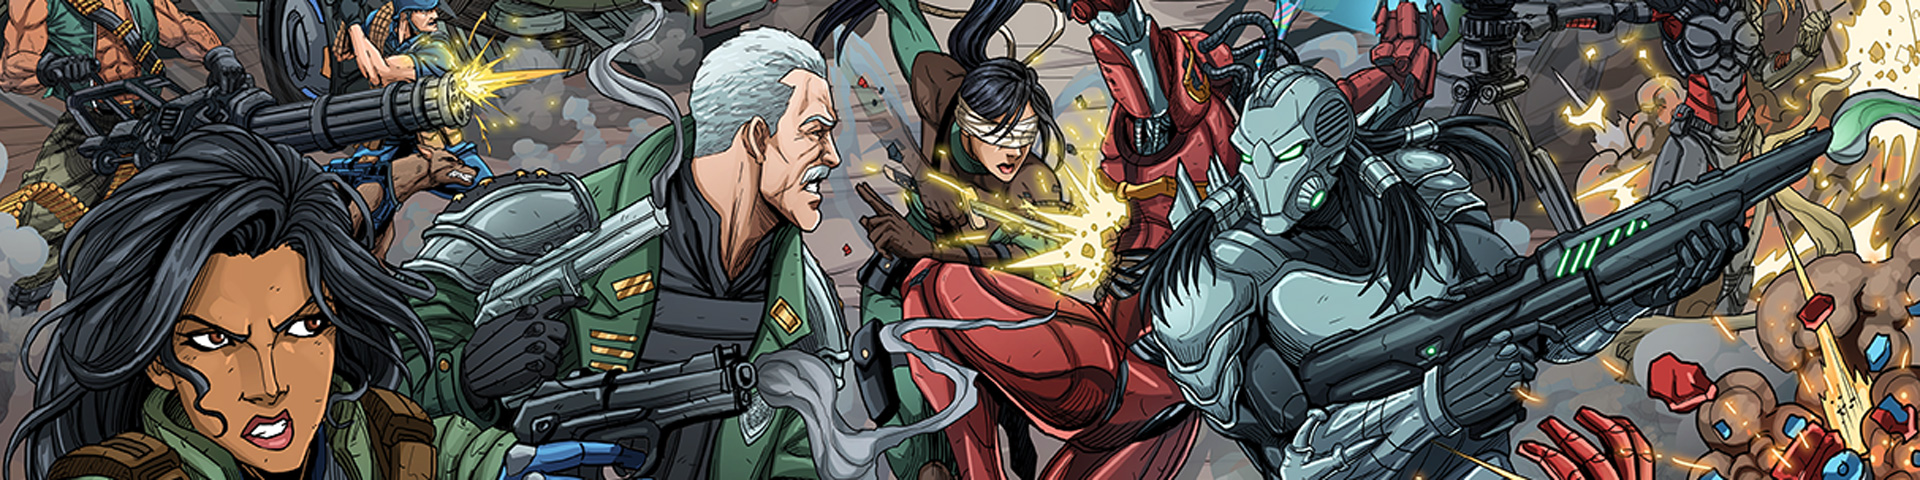 Heroes and villains fight on a chaotic, G.I. Joe-like battlefield.